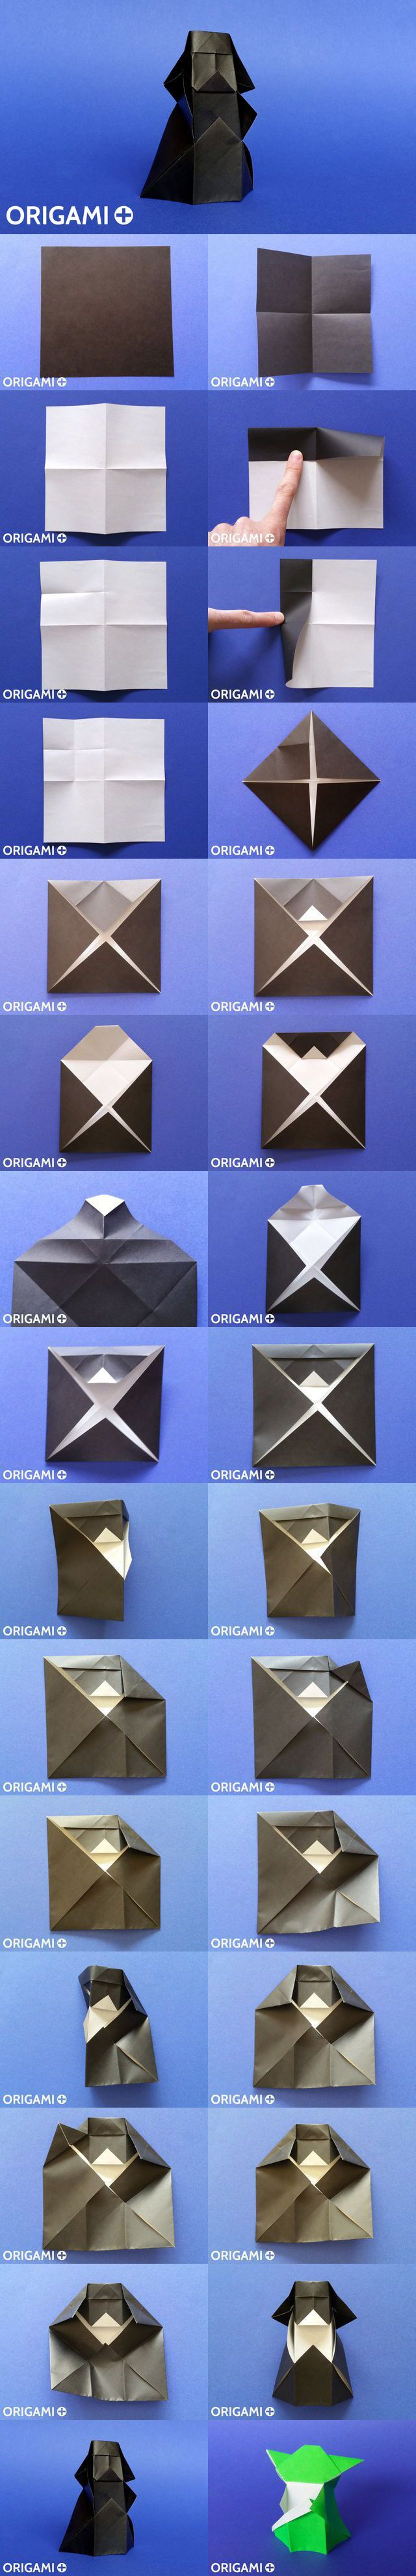 Origami Darth Vader Tutorial And Instructions Starwars For More Photos Diagrams Tutorials Of His Cool Star War Diagram Video